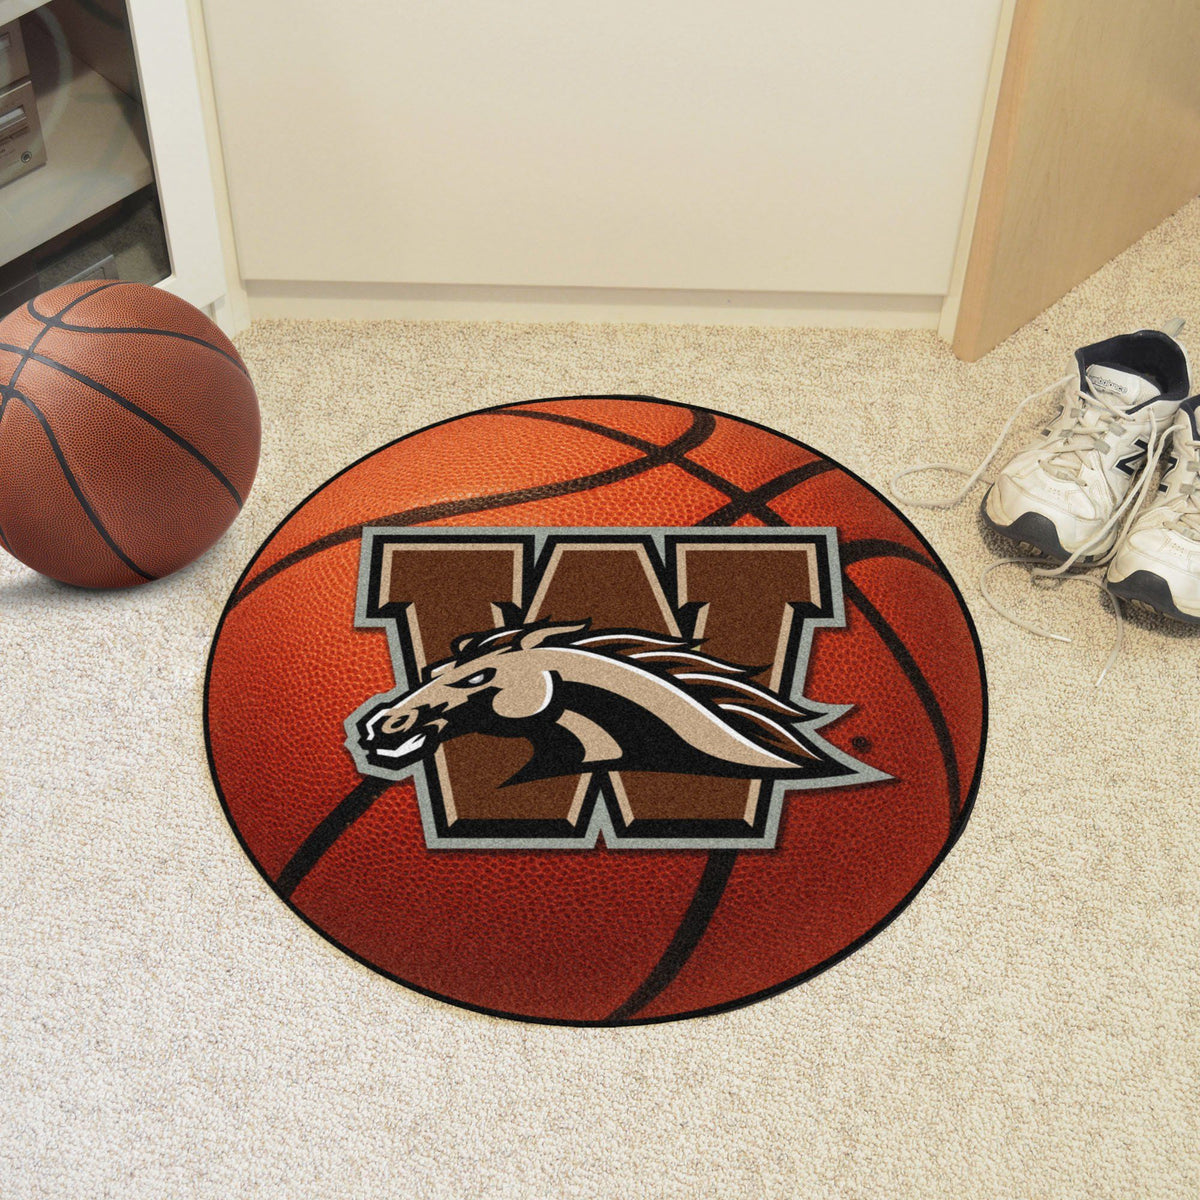 Collegiate - Basketball Mat: T - Z Collegiate Mats, Rectangular Mats, Basketball Mat, Collegiate, Home Fan Mats Western Michigan